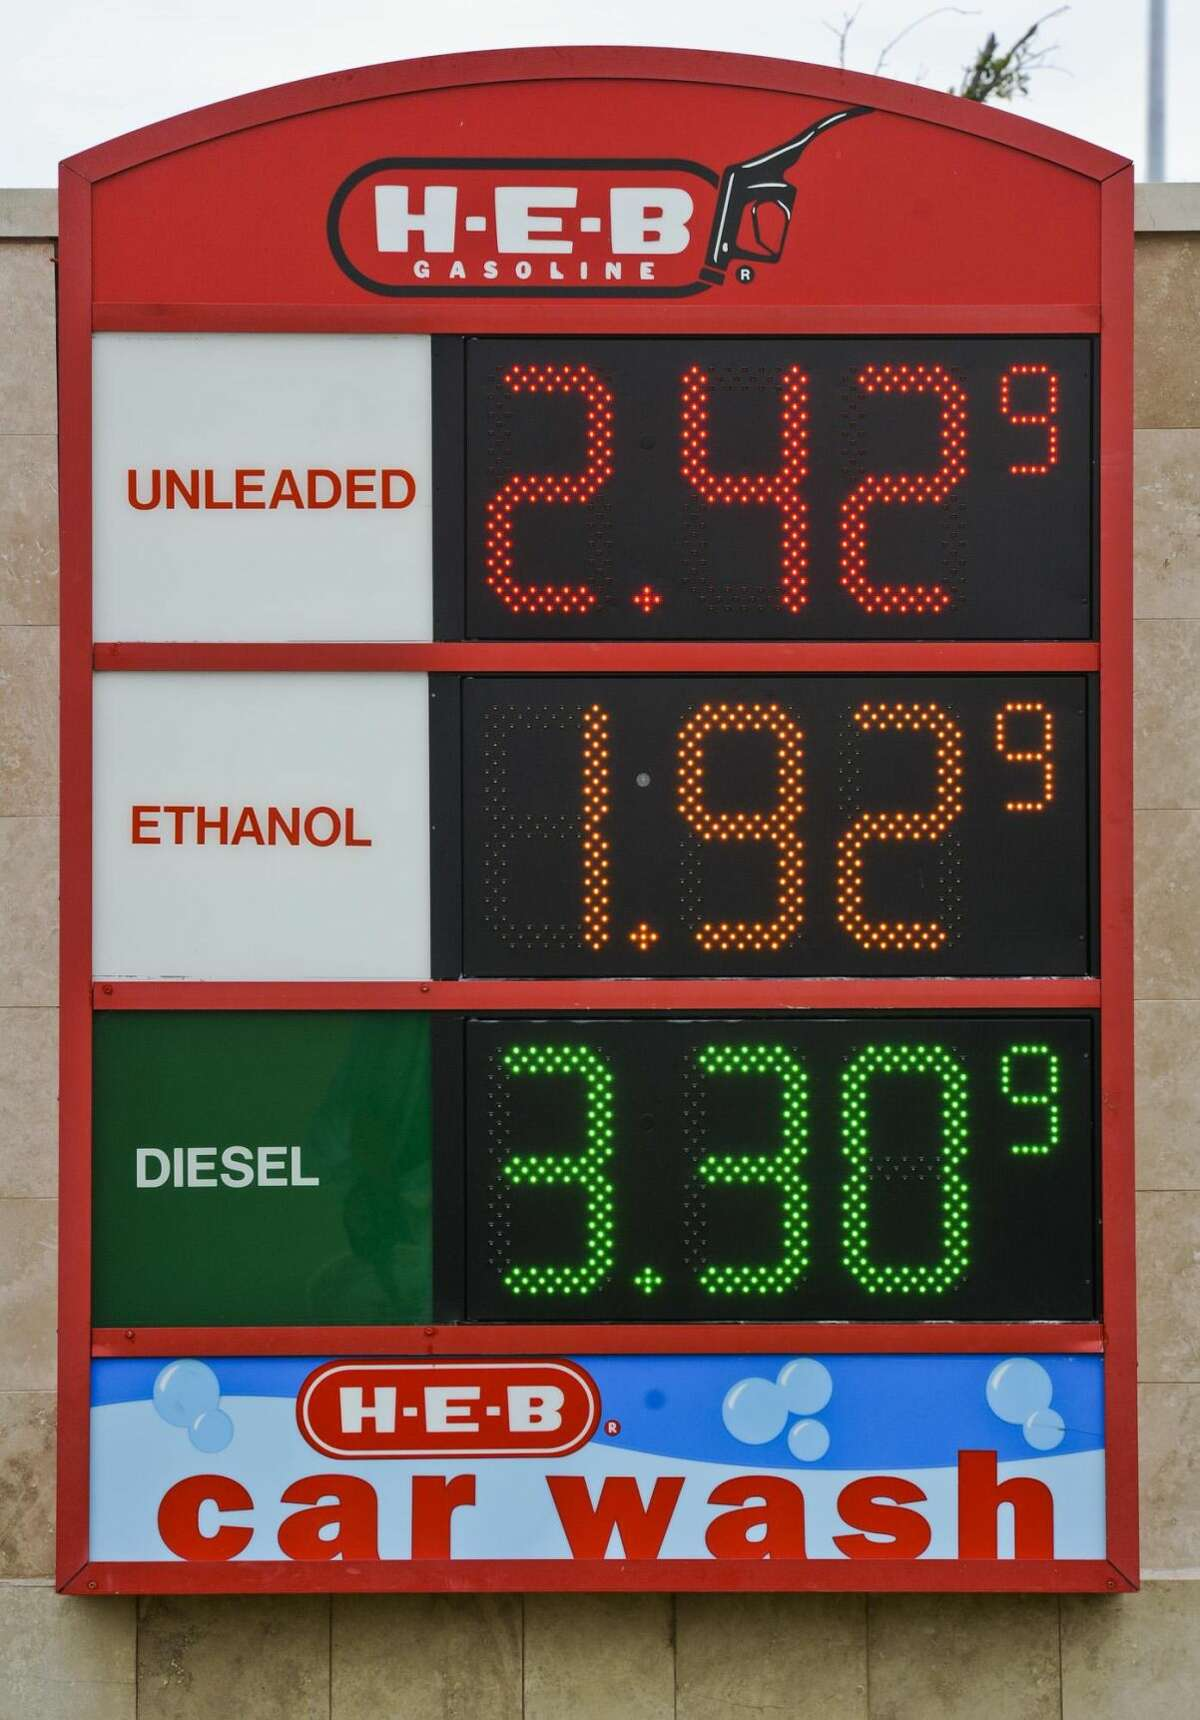 A sign displays gas prices - including $2.42 for unleaded - at the H-E-B Plus. Laredo boasted the nation's cheapest gas on Monday. (Photo by Danny Zaragoza/Laredo Morning Times)